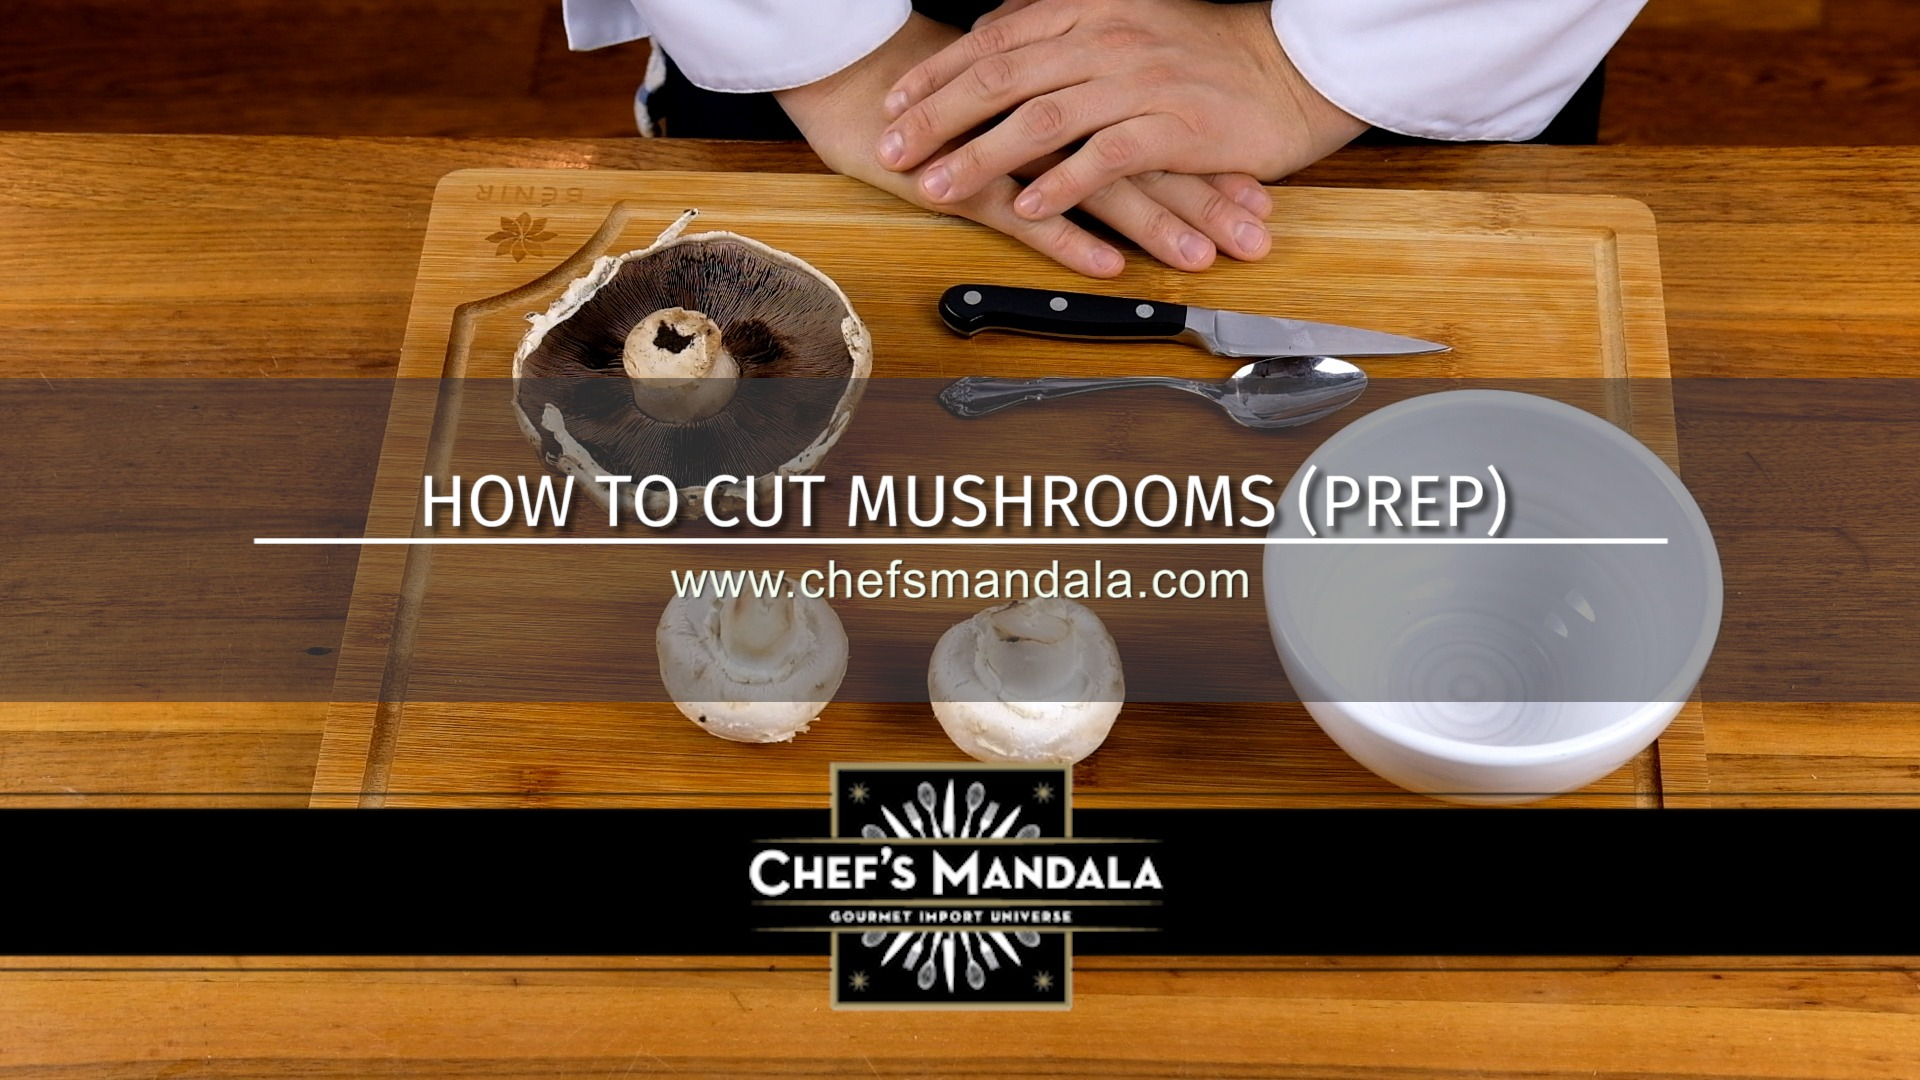 HOW TO PREP MUSHROOMS FOR COOKING